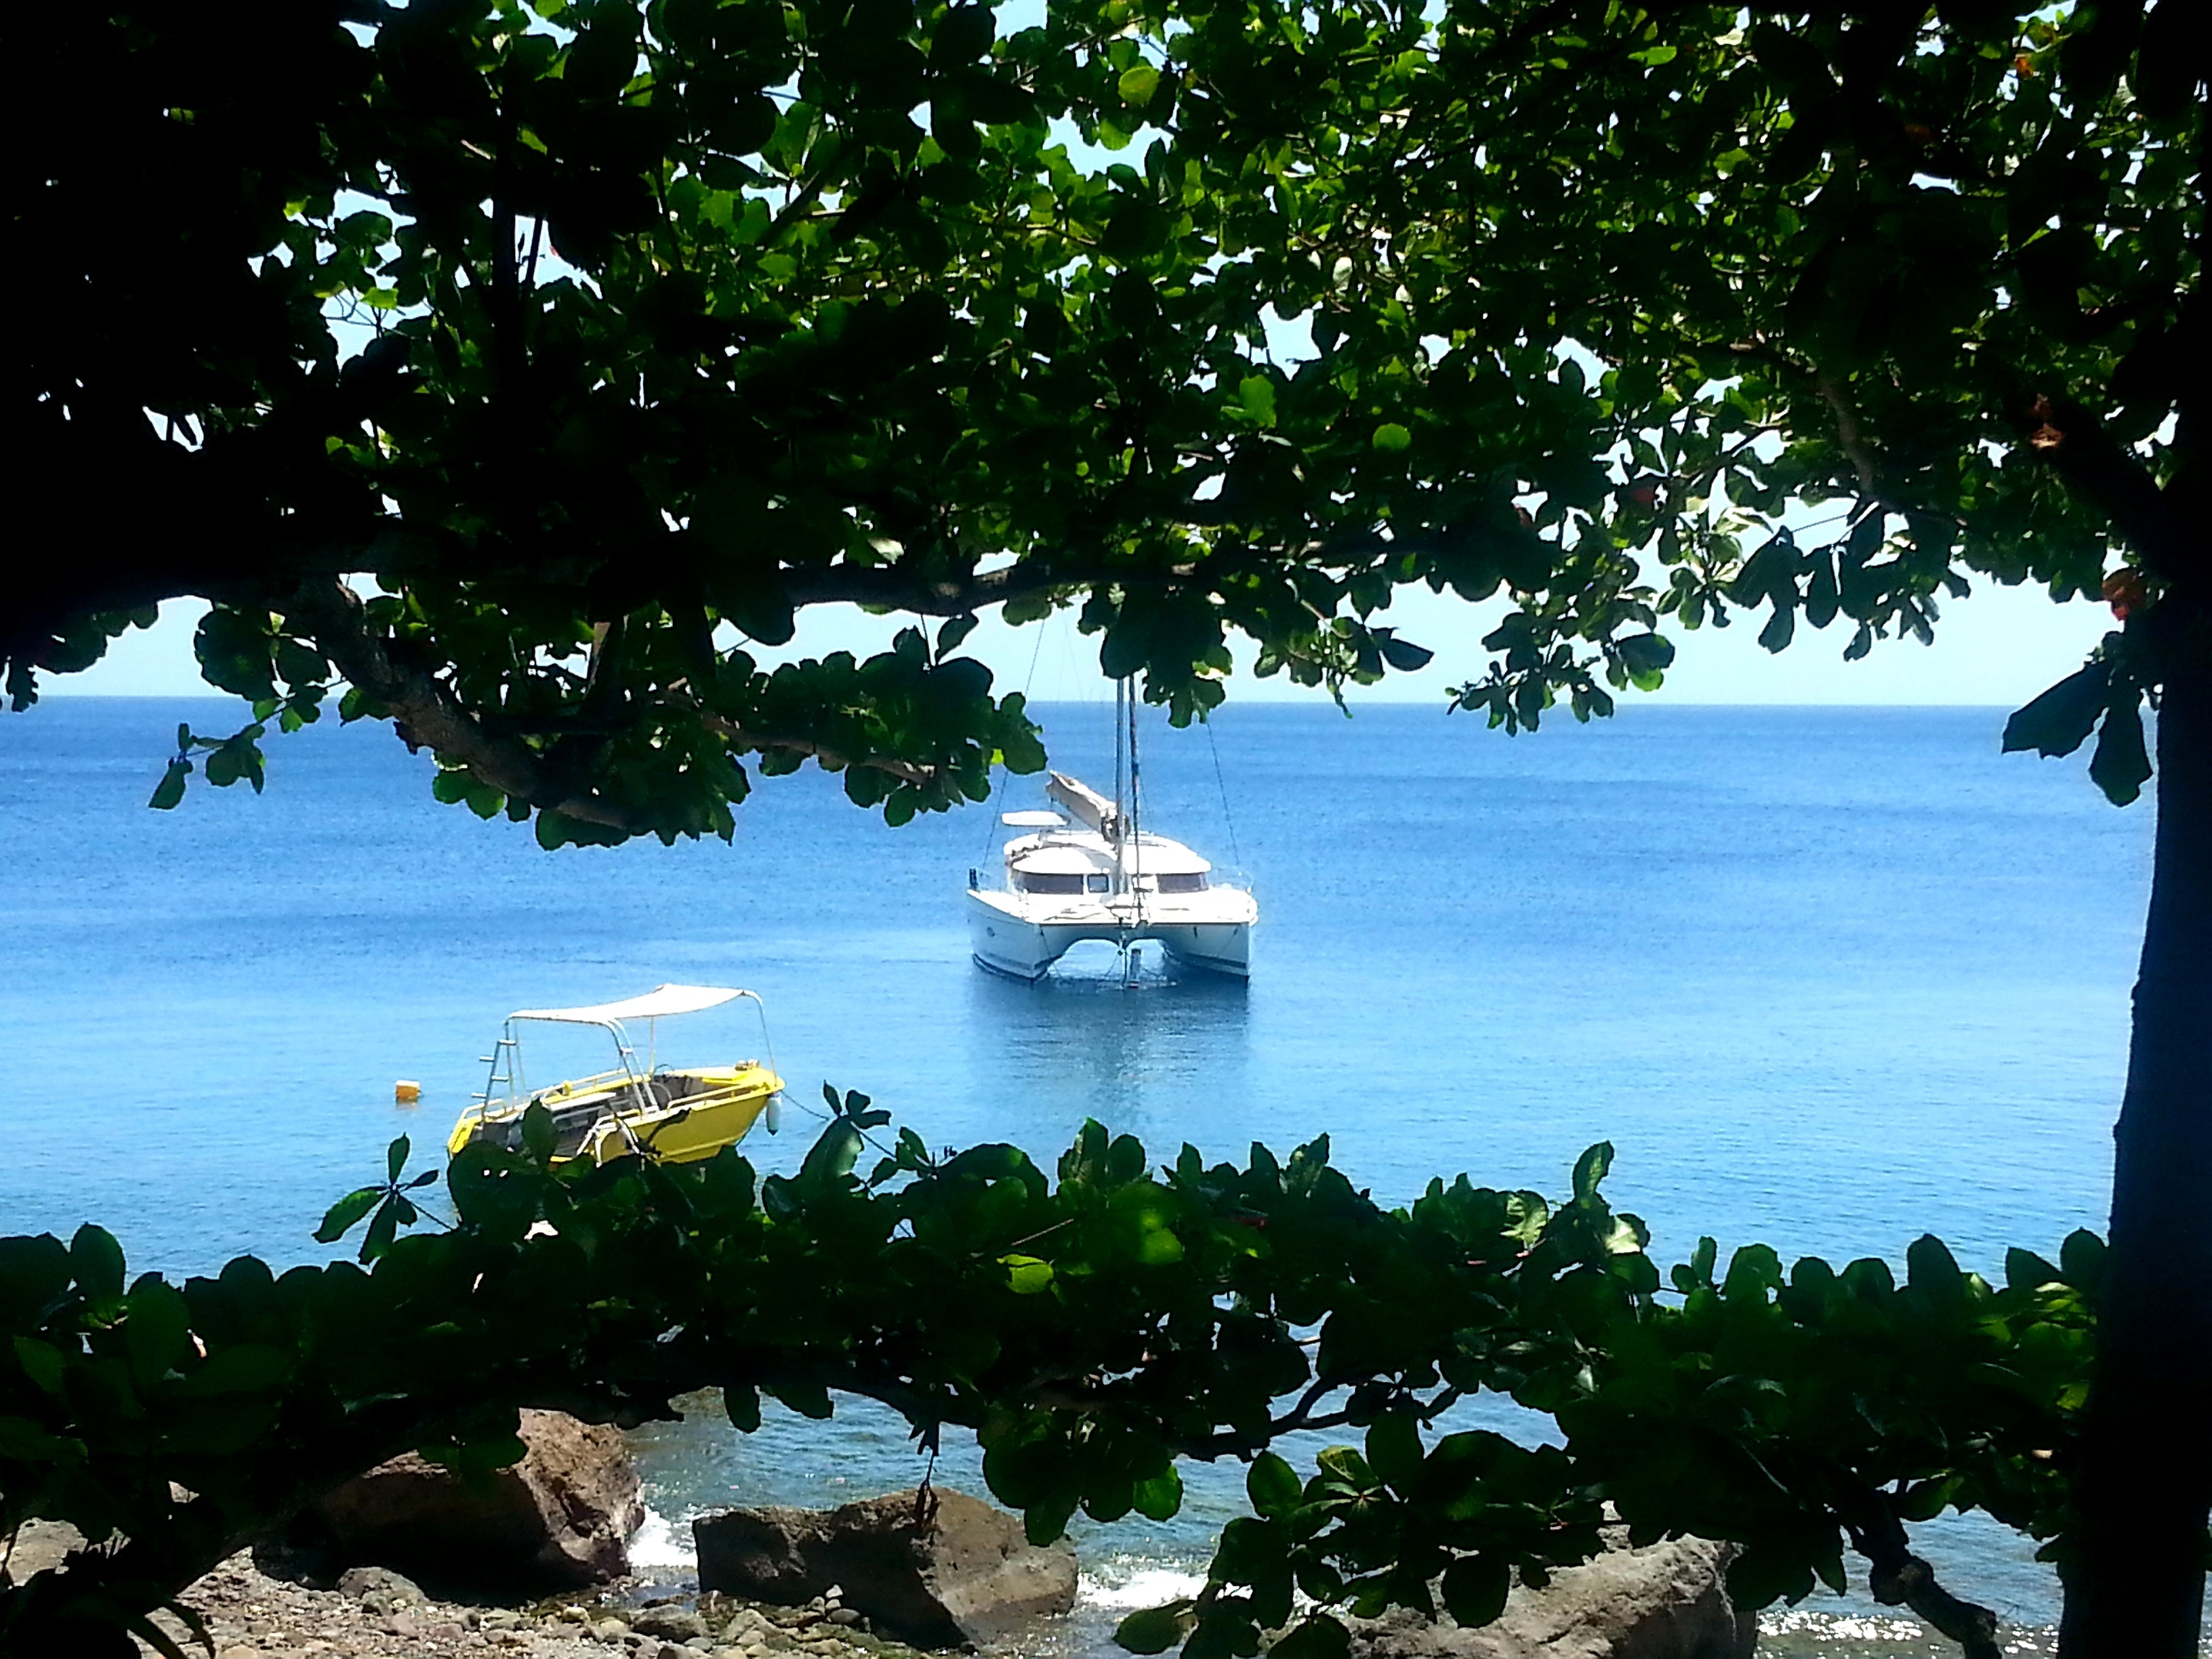 Australian Cricket Tours - A Yacht Moored Off The Coast Of The Lush Island Of Dominica